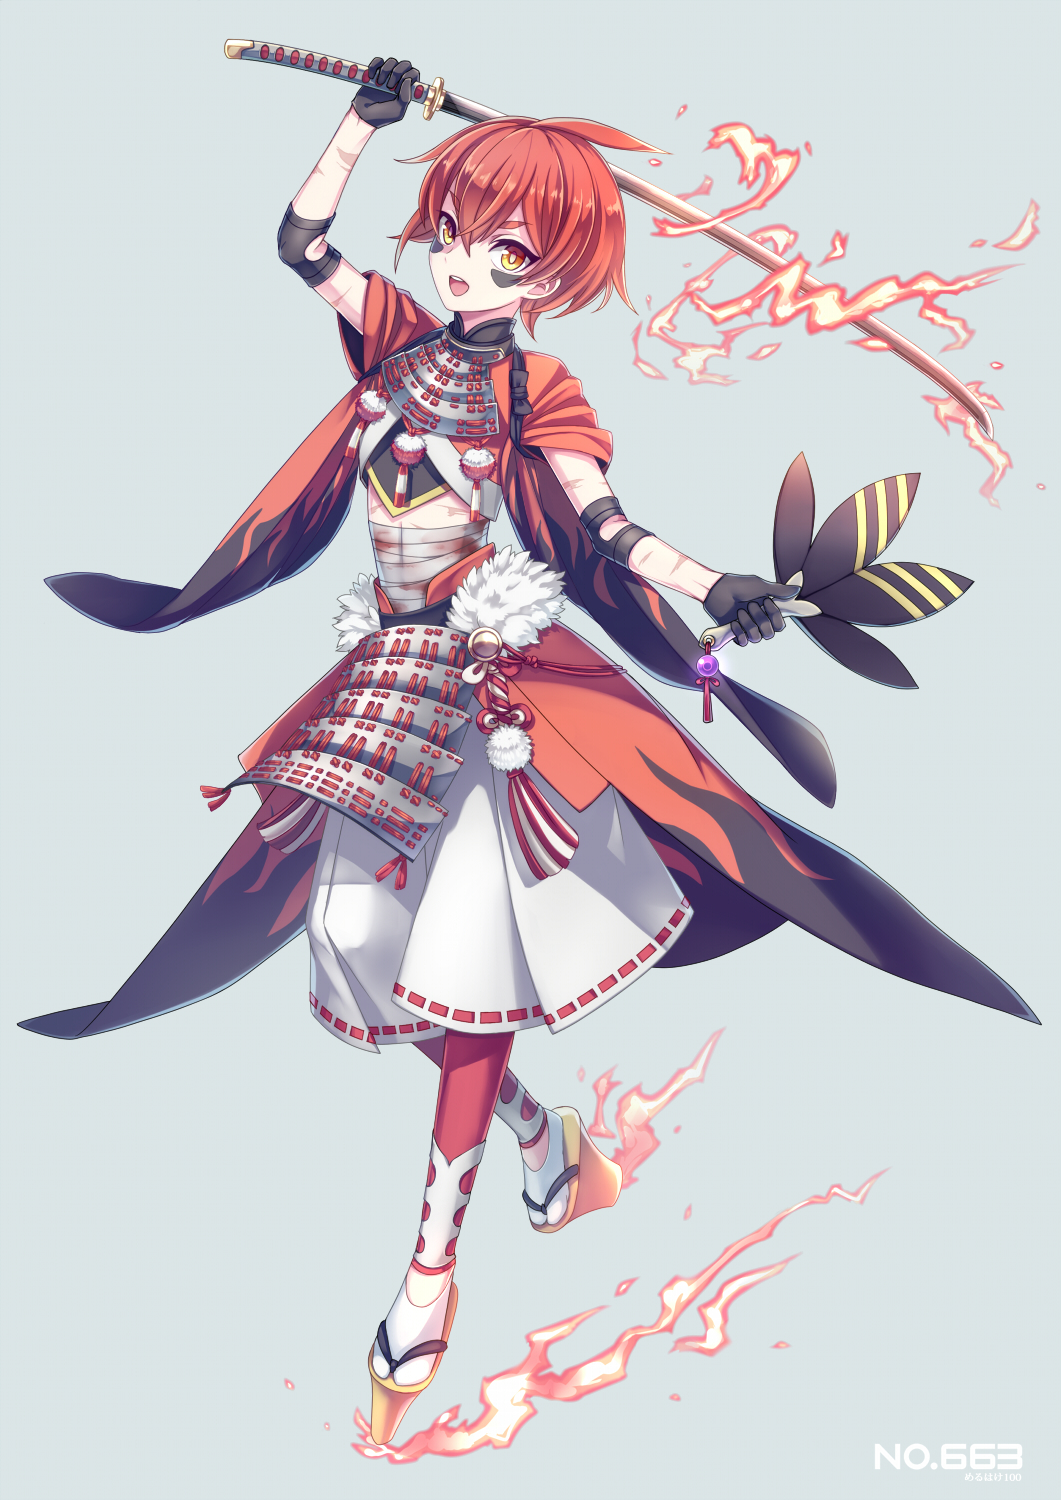 :d ahoge androgynous arm_up armor bandages black_gloves blood blood_stain crop_top dual_wielding elbow_pads facial_mark feathers fire flame_print flaming_sword full_body gloves hair_between_eyes hakama highres holding_fan holding_sword holding_weapon japanese_armor japanese_clothes kusazuri leaf_fan looking_at_viewer marble merlusa number open_mouth orange_eyes personification platform_footwear pokemon pokemon_(game) pom_pom_(clothes) red_legwear red_ribbon redhead ribbon ribbon-trimmed_shorts rope scar short_hair simple_background slippers smile solo sword talonflame tassel tasuki waist_cape walking weapon